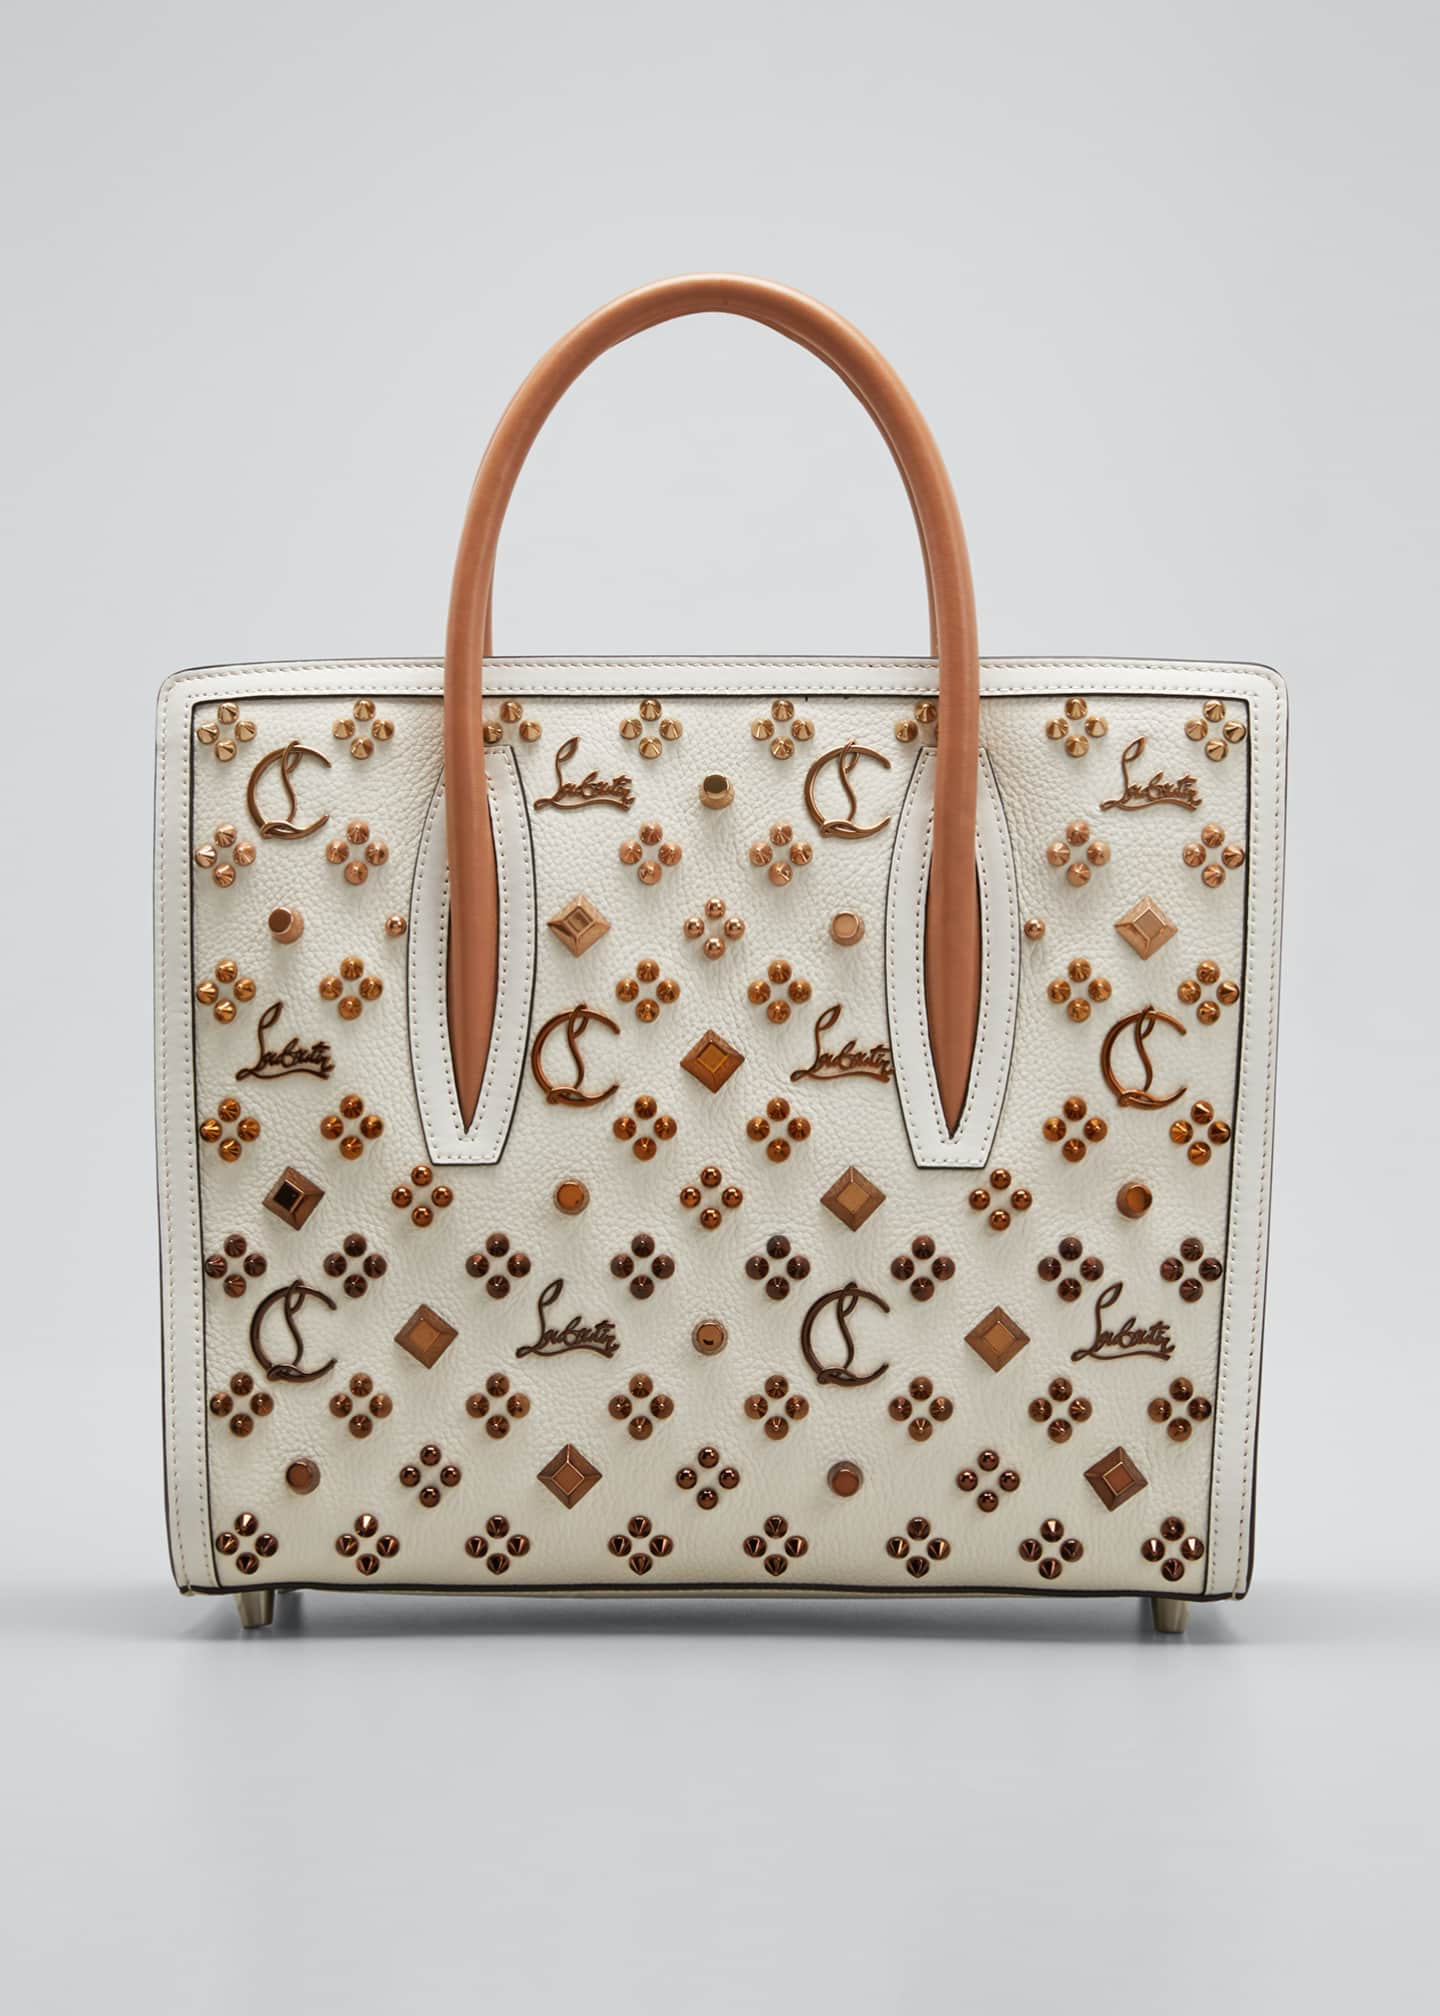 Christian Louboutin Paloma Medium Calf Tote Bag